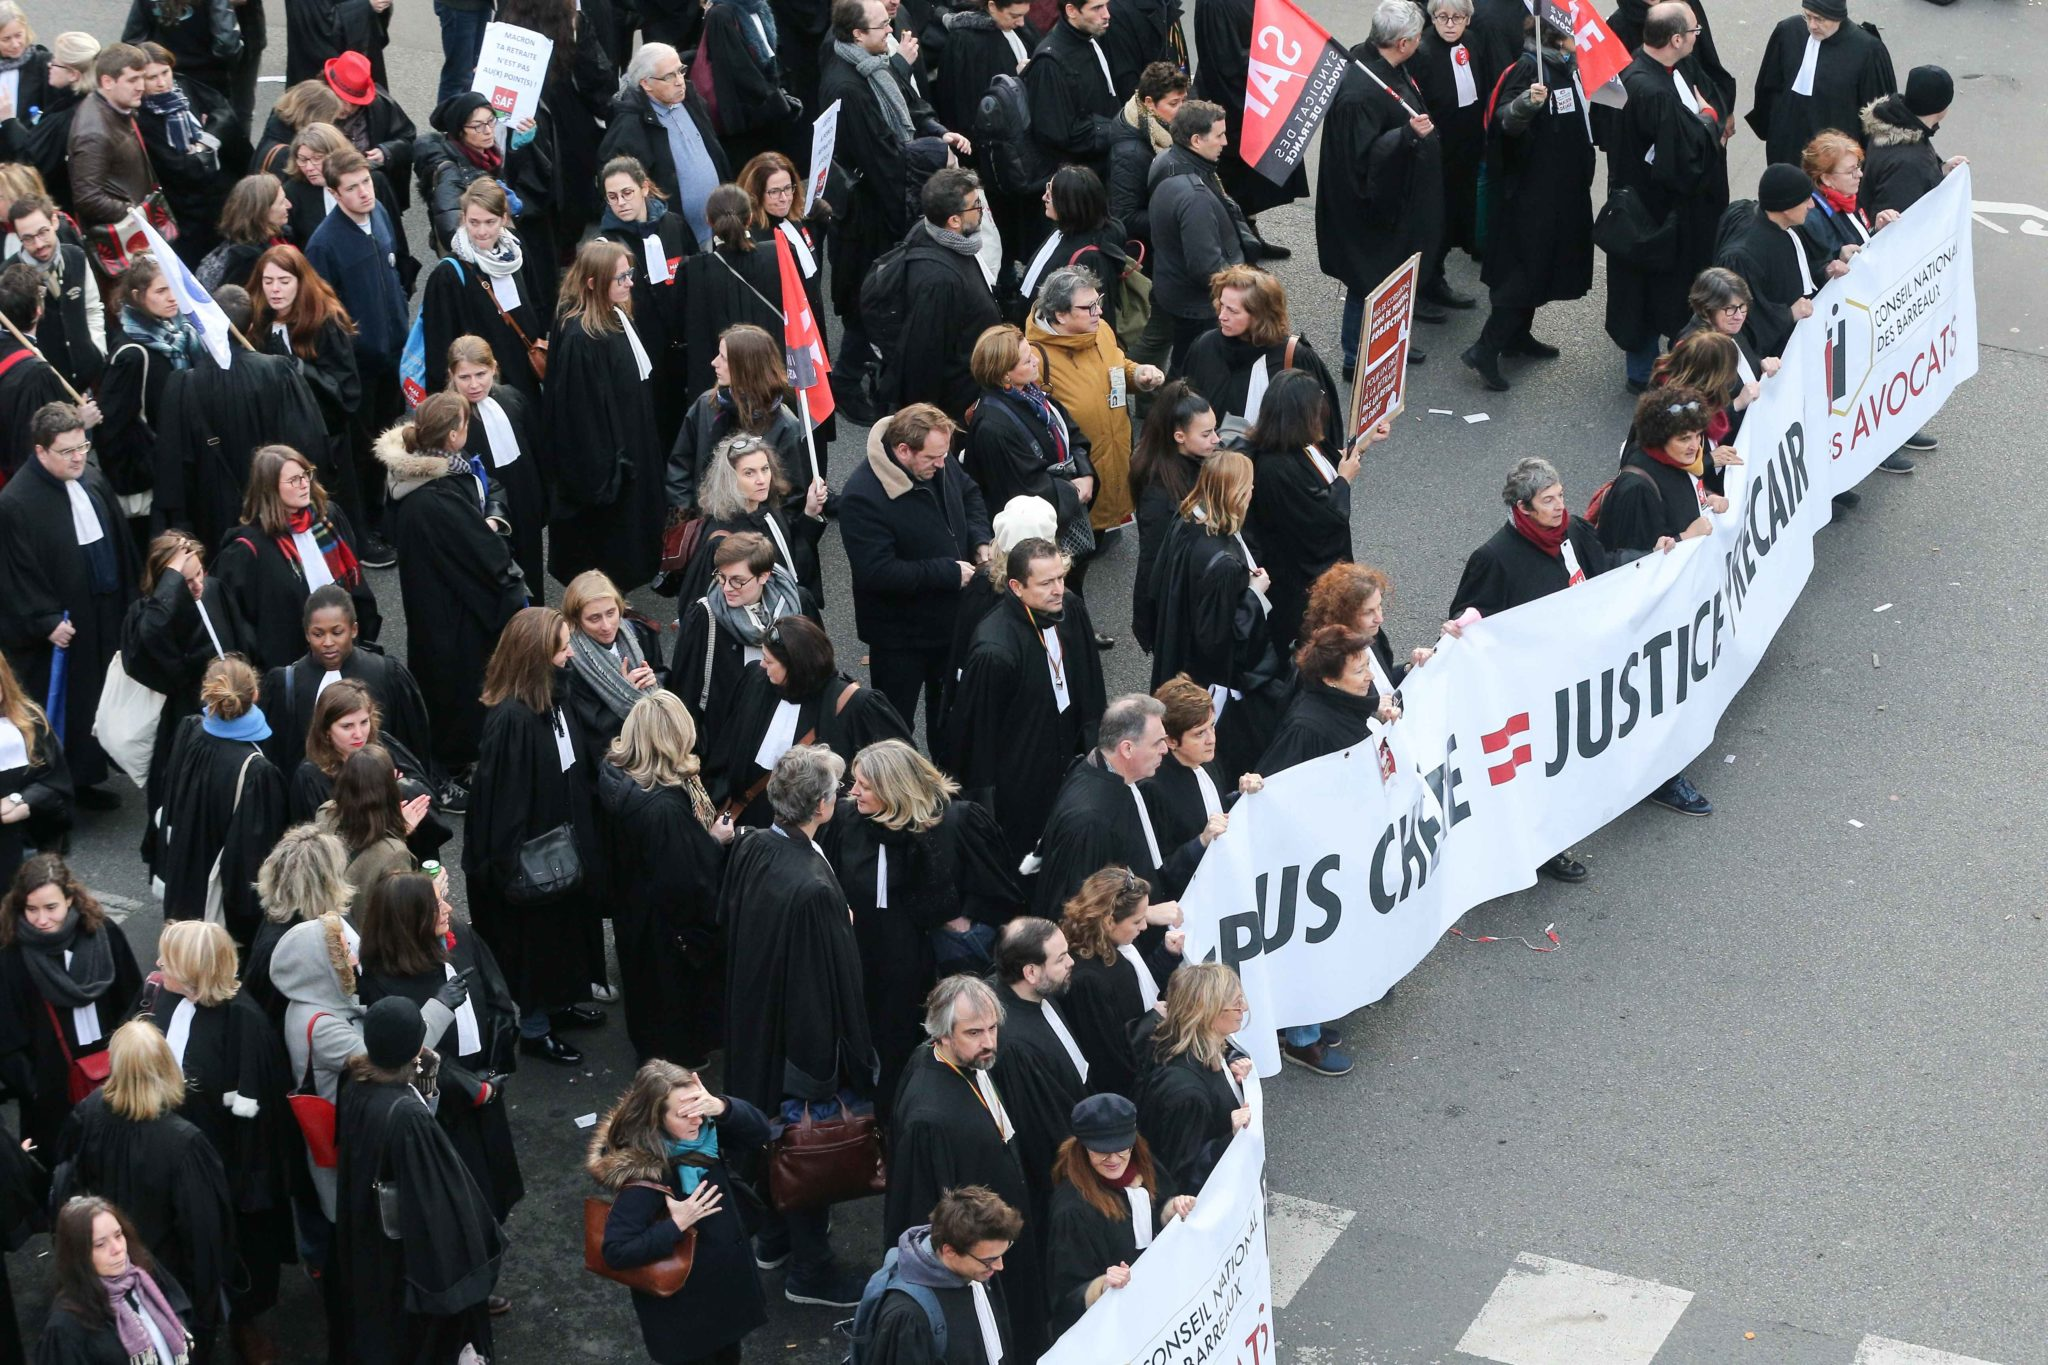 Lawyers wearing their robe walk behind a banner during a demonstration in Paris, on January 11, 2020, as part of a nationwide multi-sector strike against the French government's pensions overhaul. The country has been hit by 37 days of crippling train and